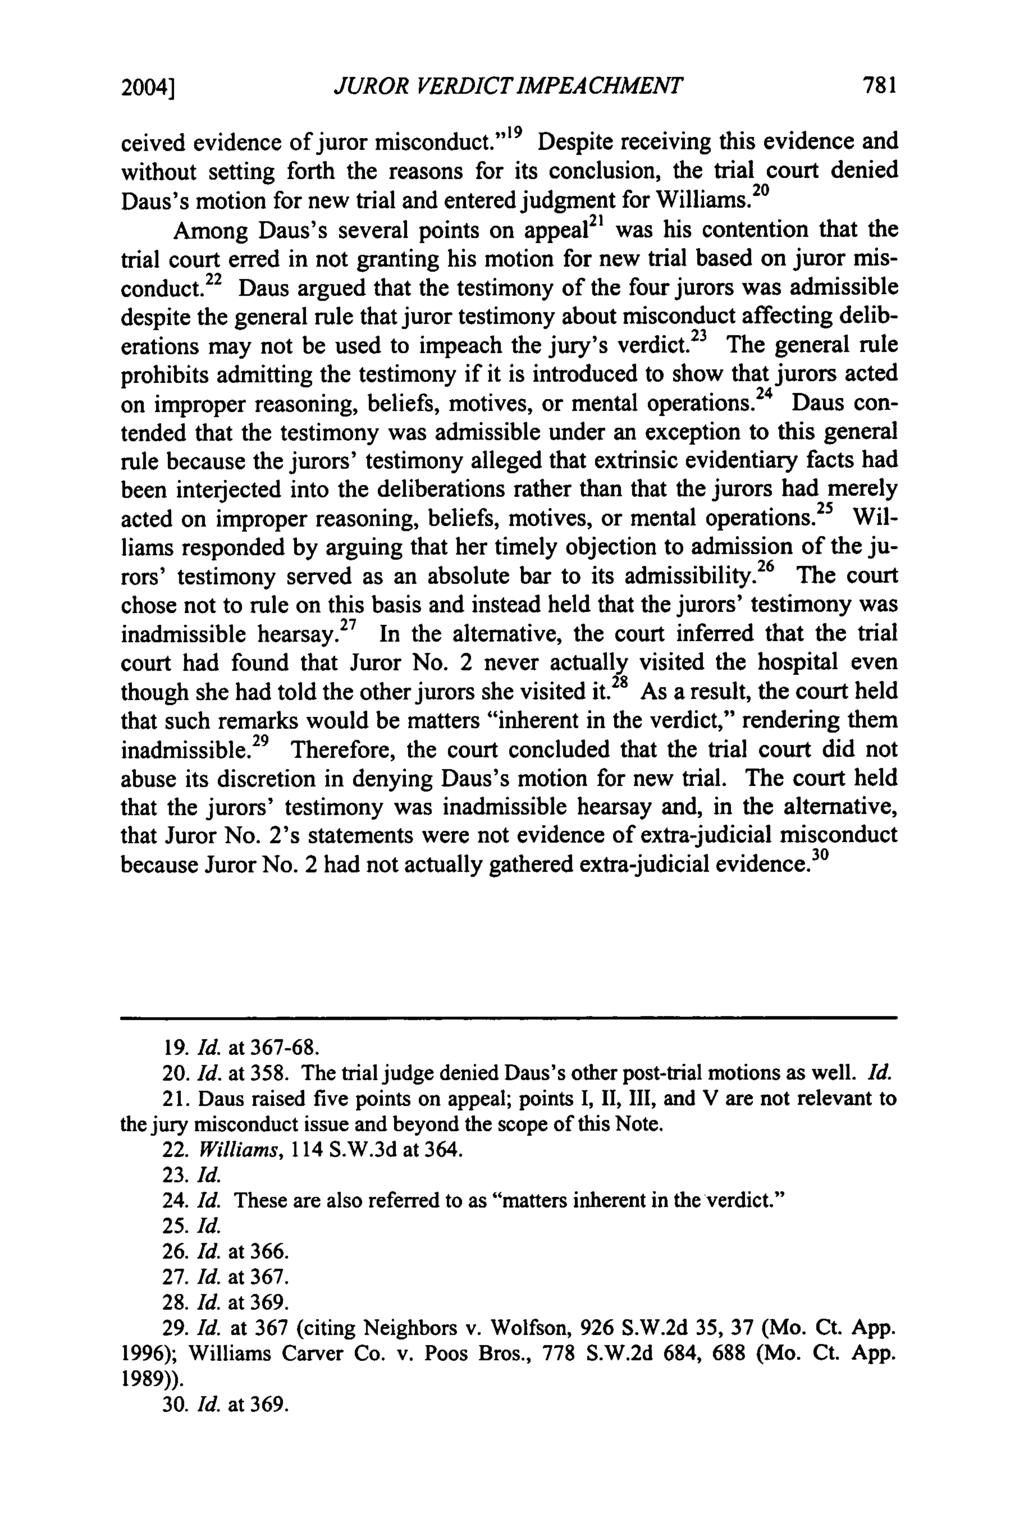 2004] Mudd: Mudd: Liberalizing the Mansfield Rule in Missouri: JUROR VERDICT IMPEACHMENT ceived evidence of juror misconduct.